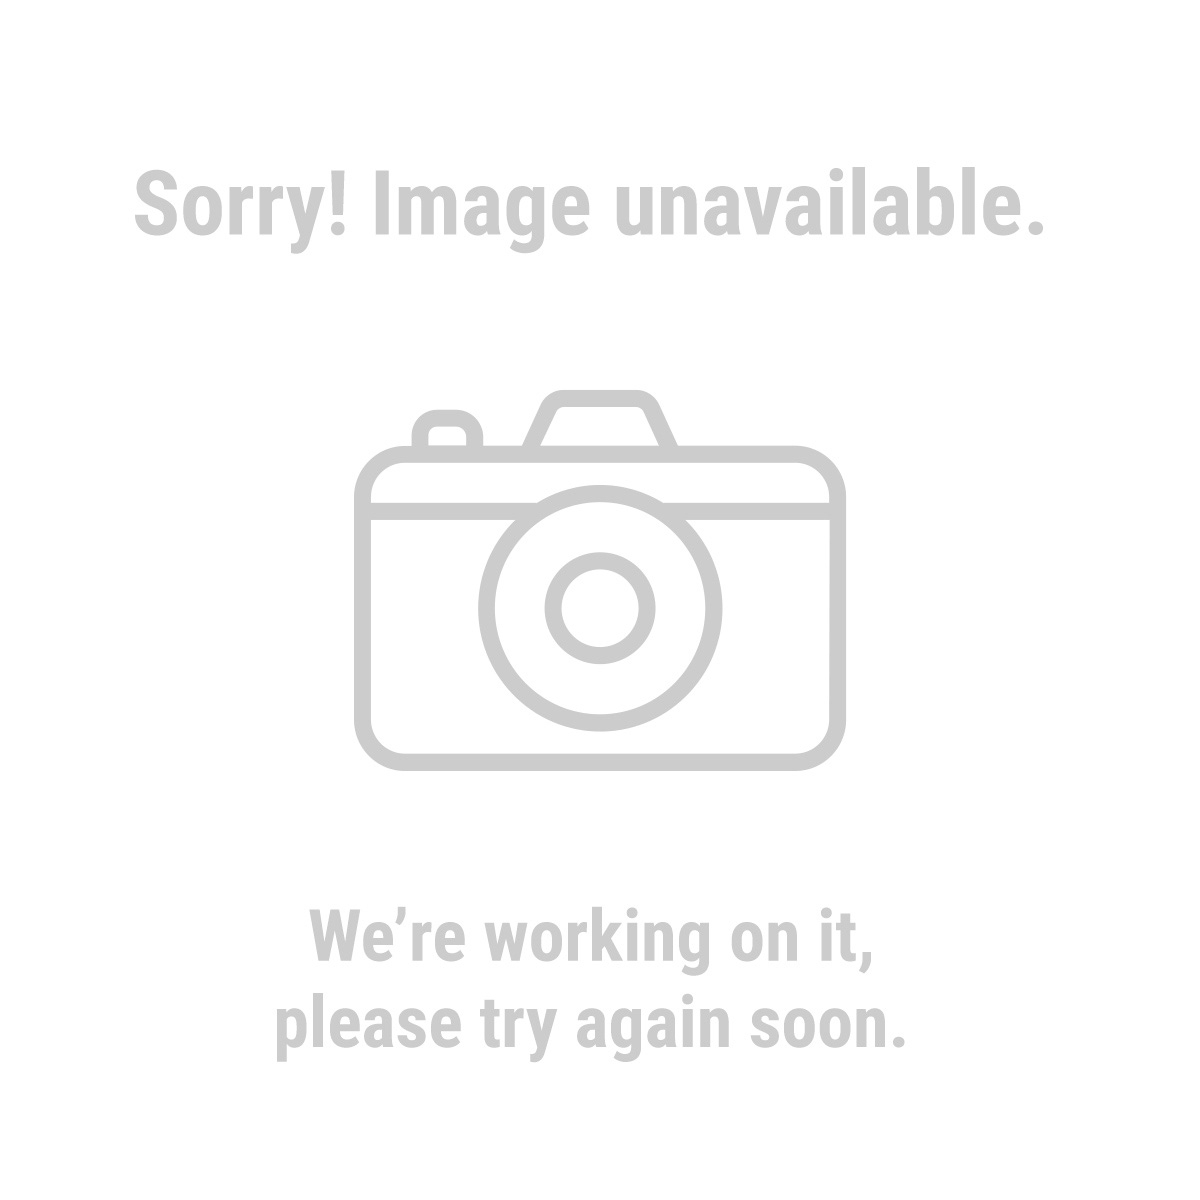 67514 Two Tier Step Ladder/Chair